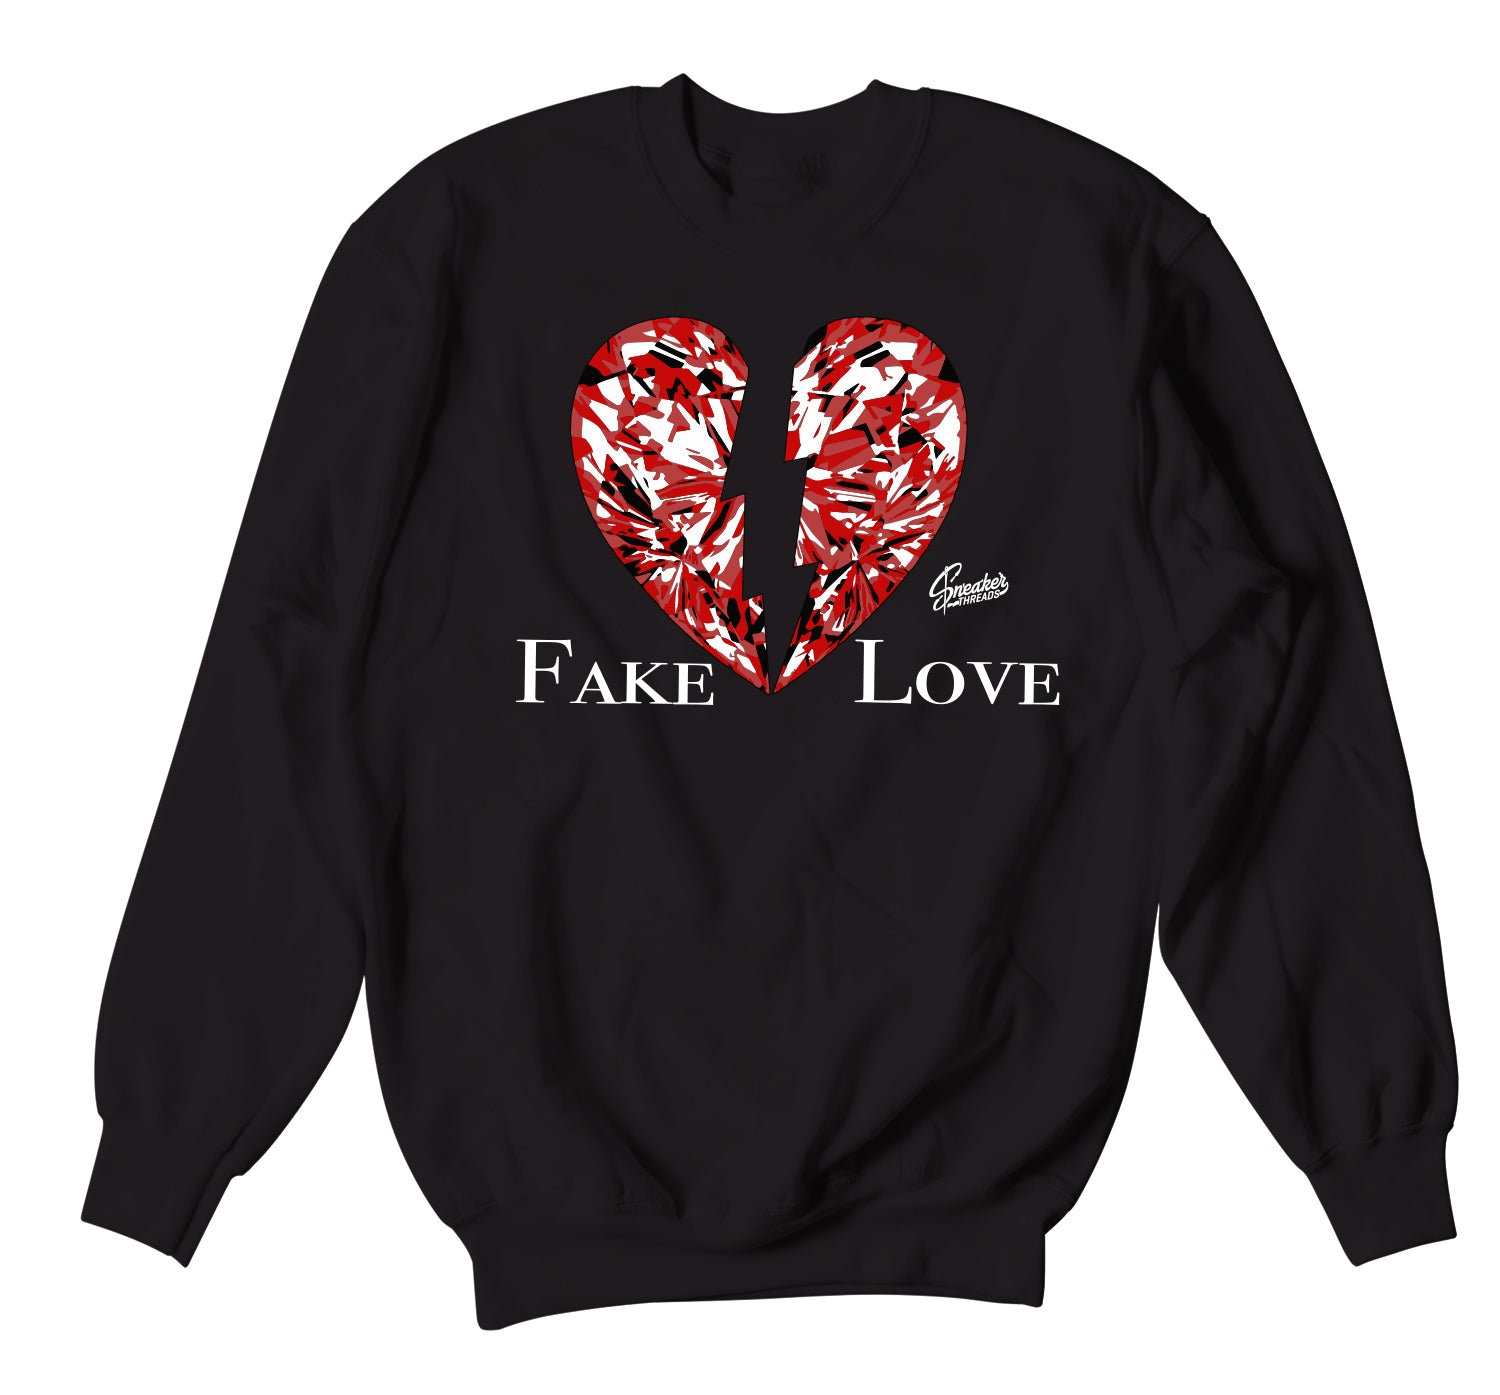 Jordan 6 Carmine Sweater - Fake Love - Black